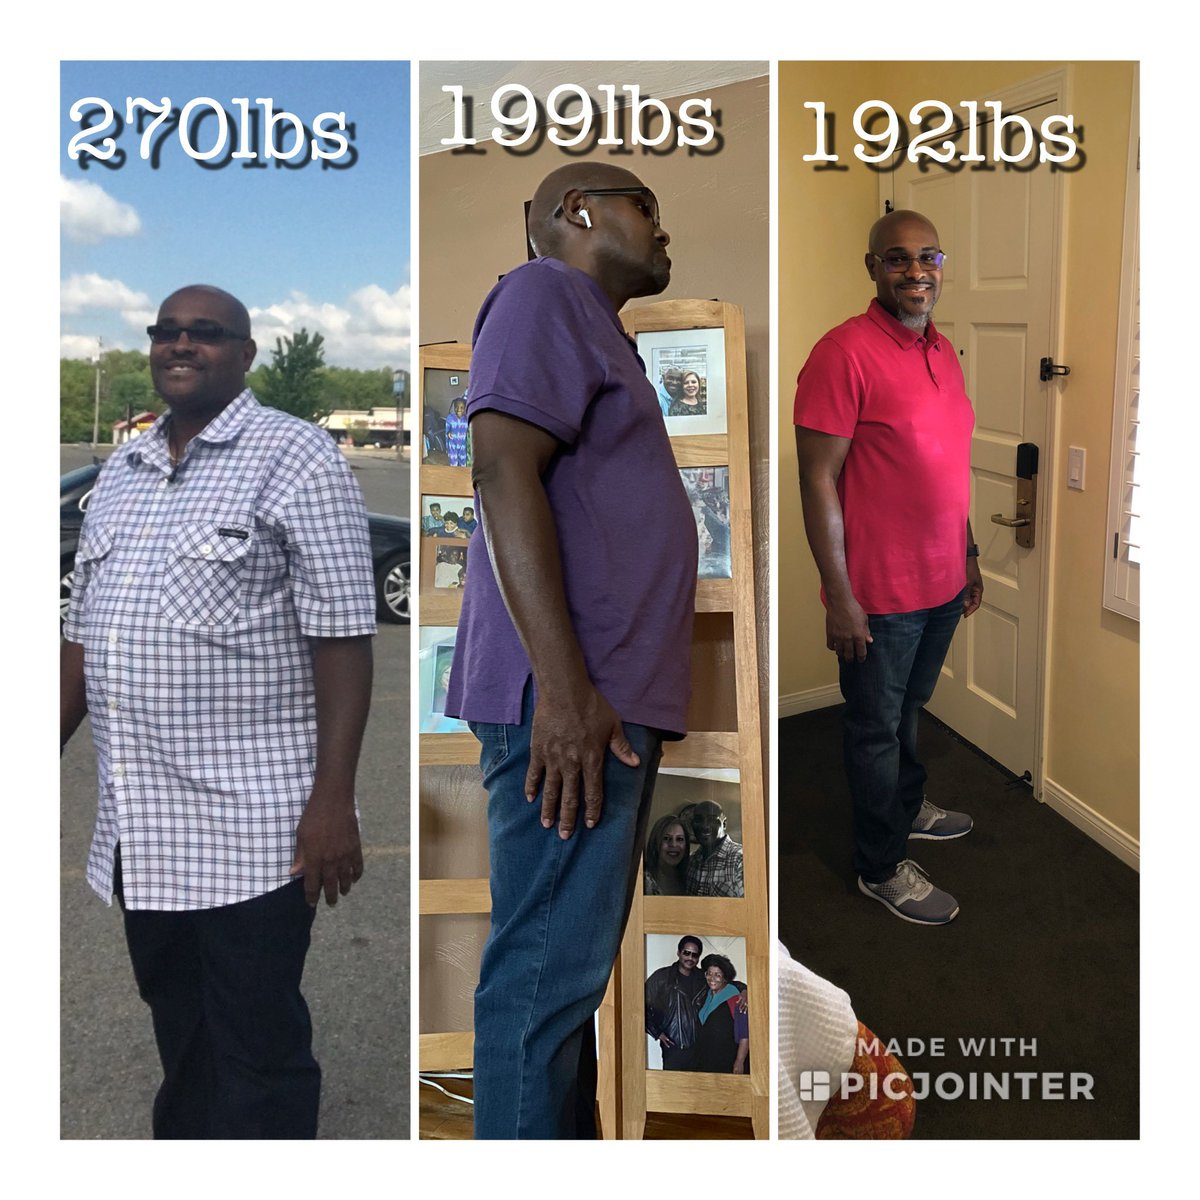 My keto journey I'm back on track to getting to 185 is my weight goal #ketodiet <br>http://pic.twitter.com/mlFpEgtDxX